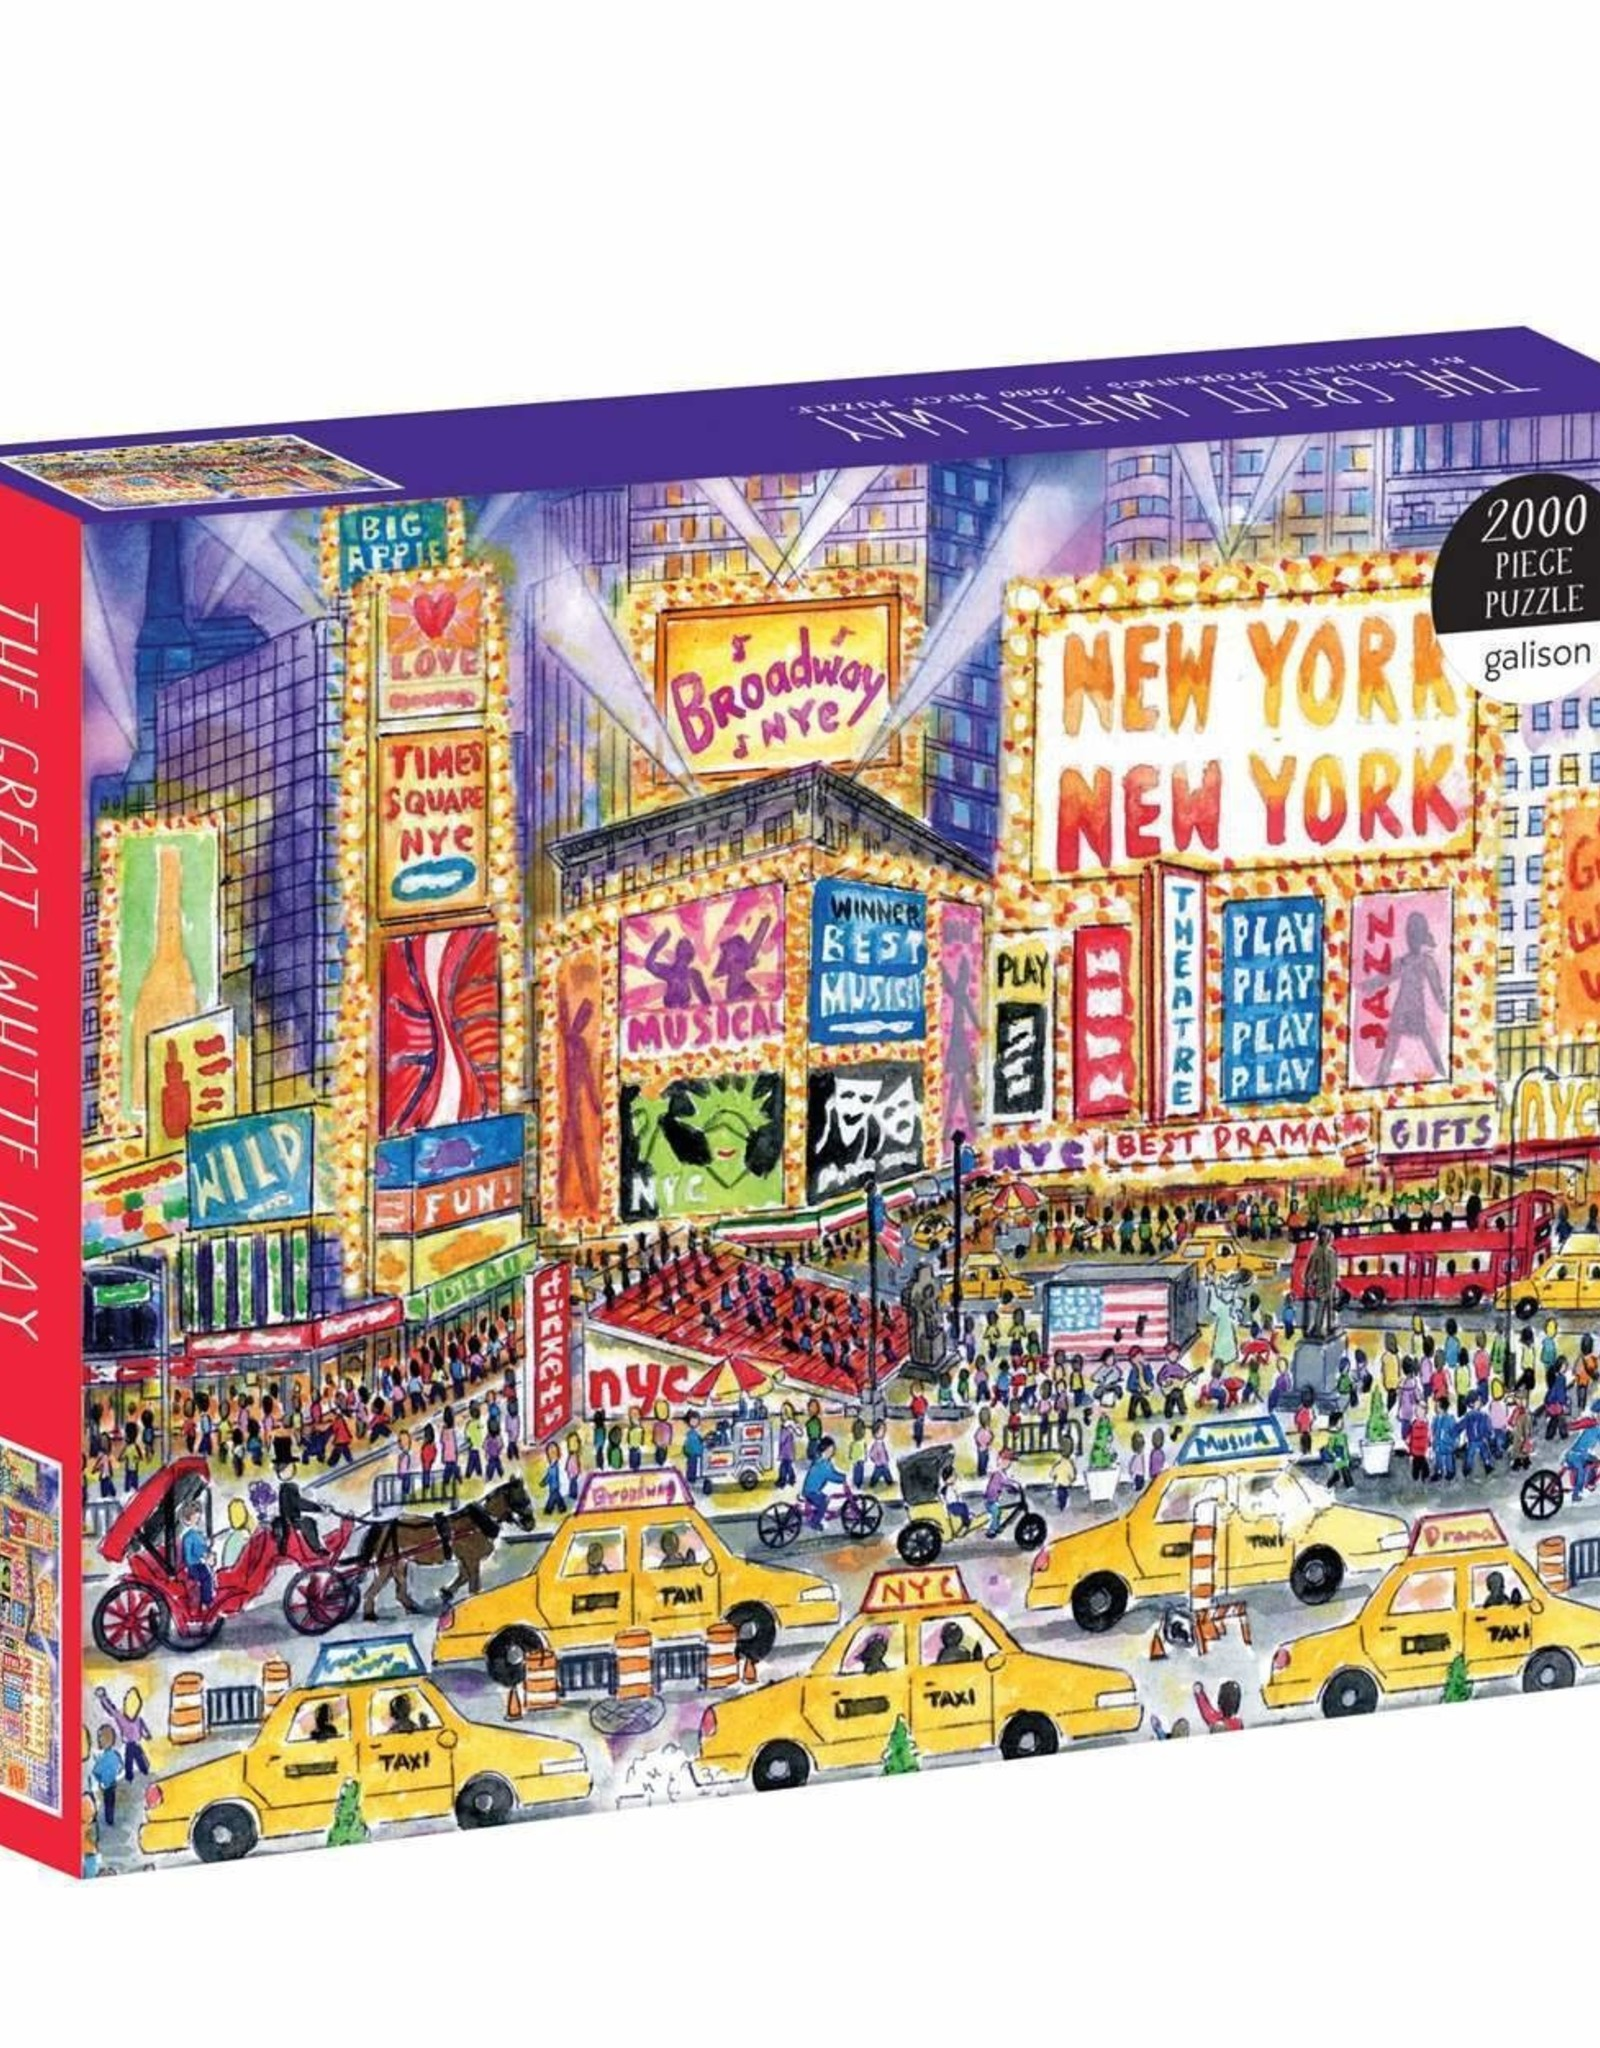 Puzzle 2000 piece The Great White Way New York New York